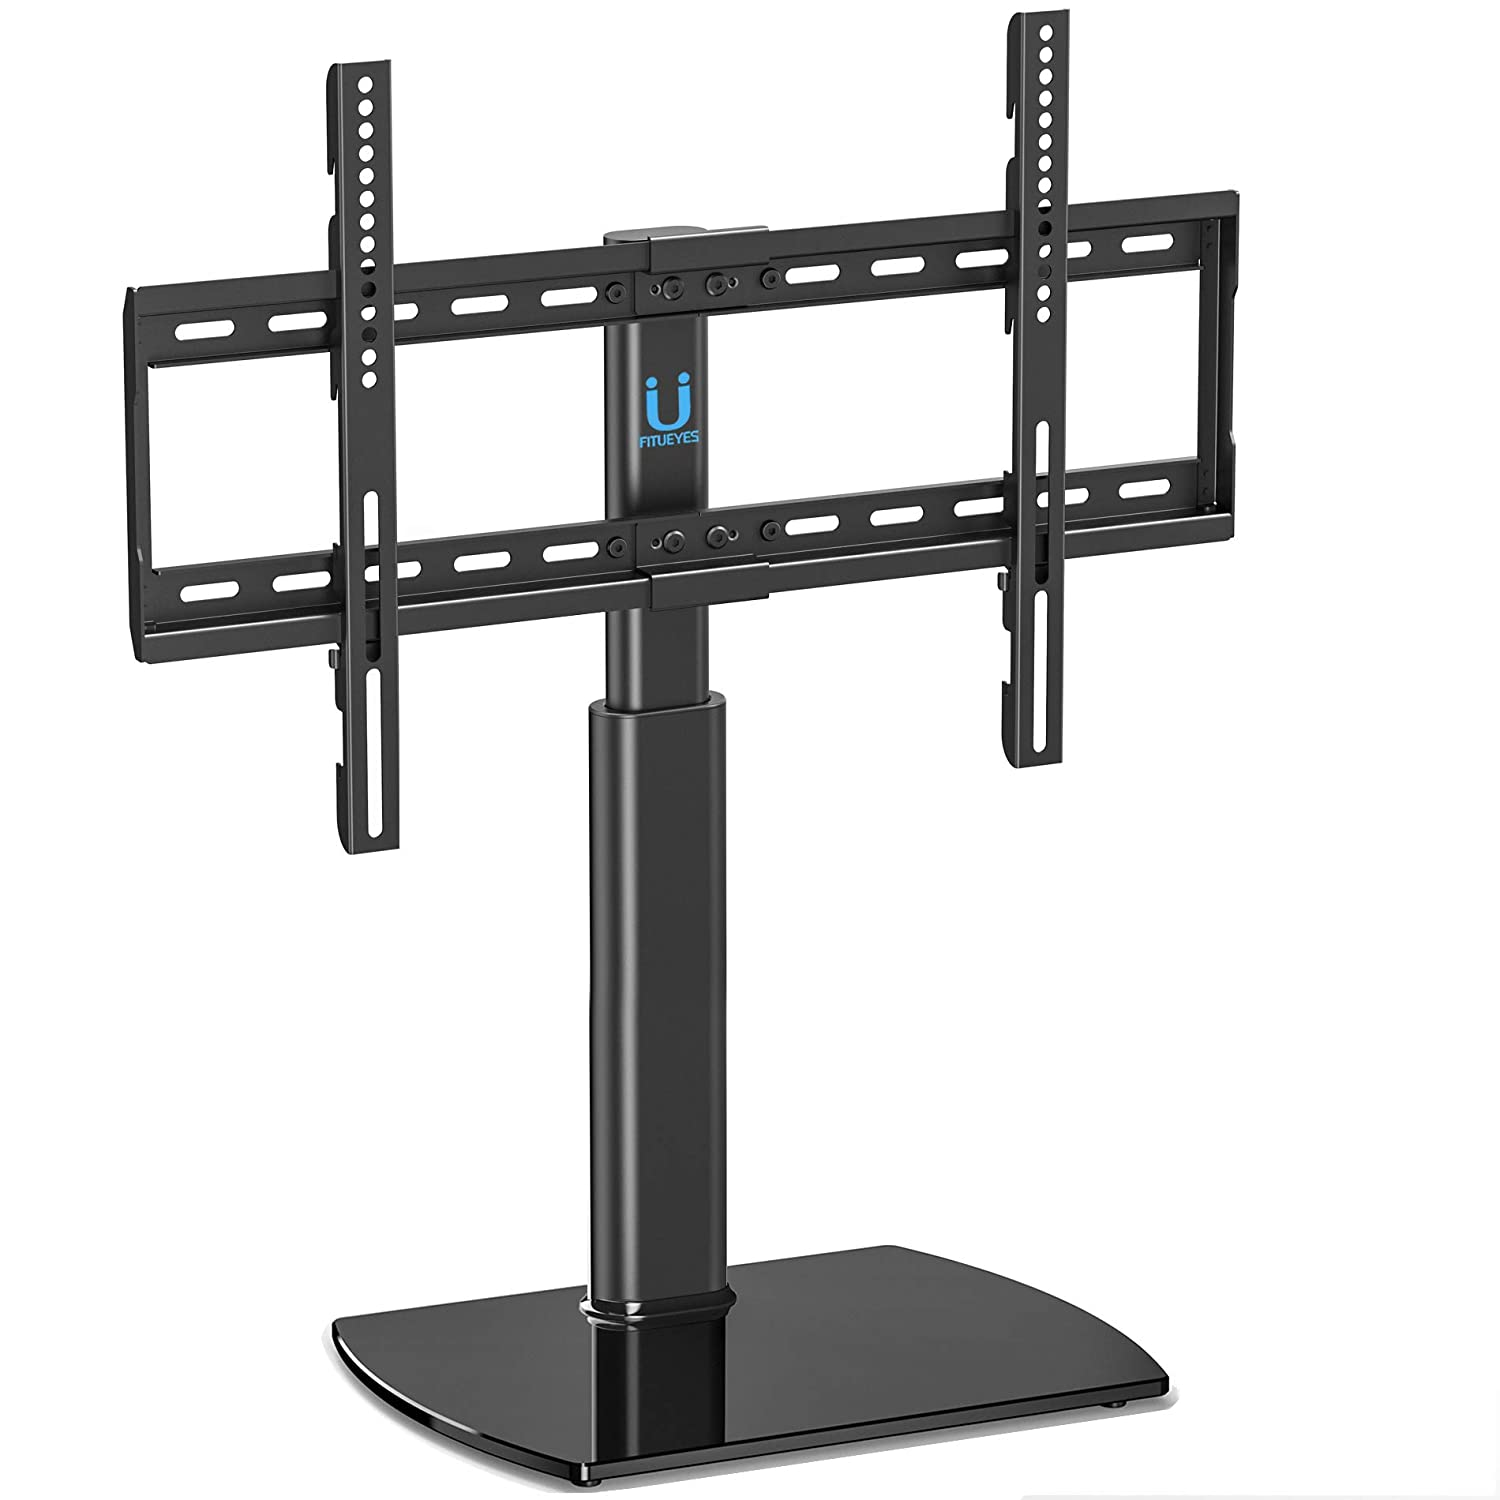 FITUEYES Universal TV Stand/Base Swivel Tabletop TV Stand Mount 32 to 65 inch Flat Screen Tvs/Xbox One/tv Component/Vizio Tv TT107002GB